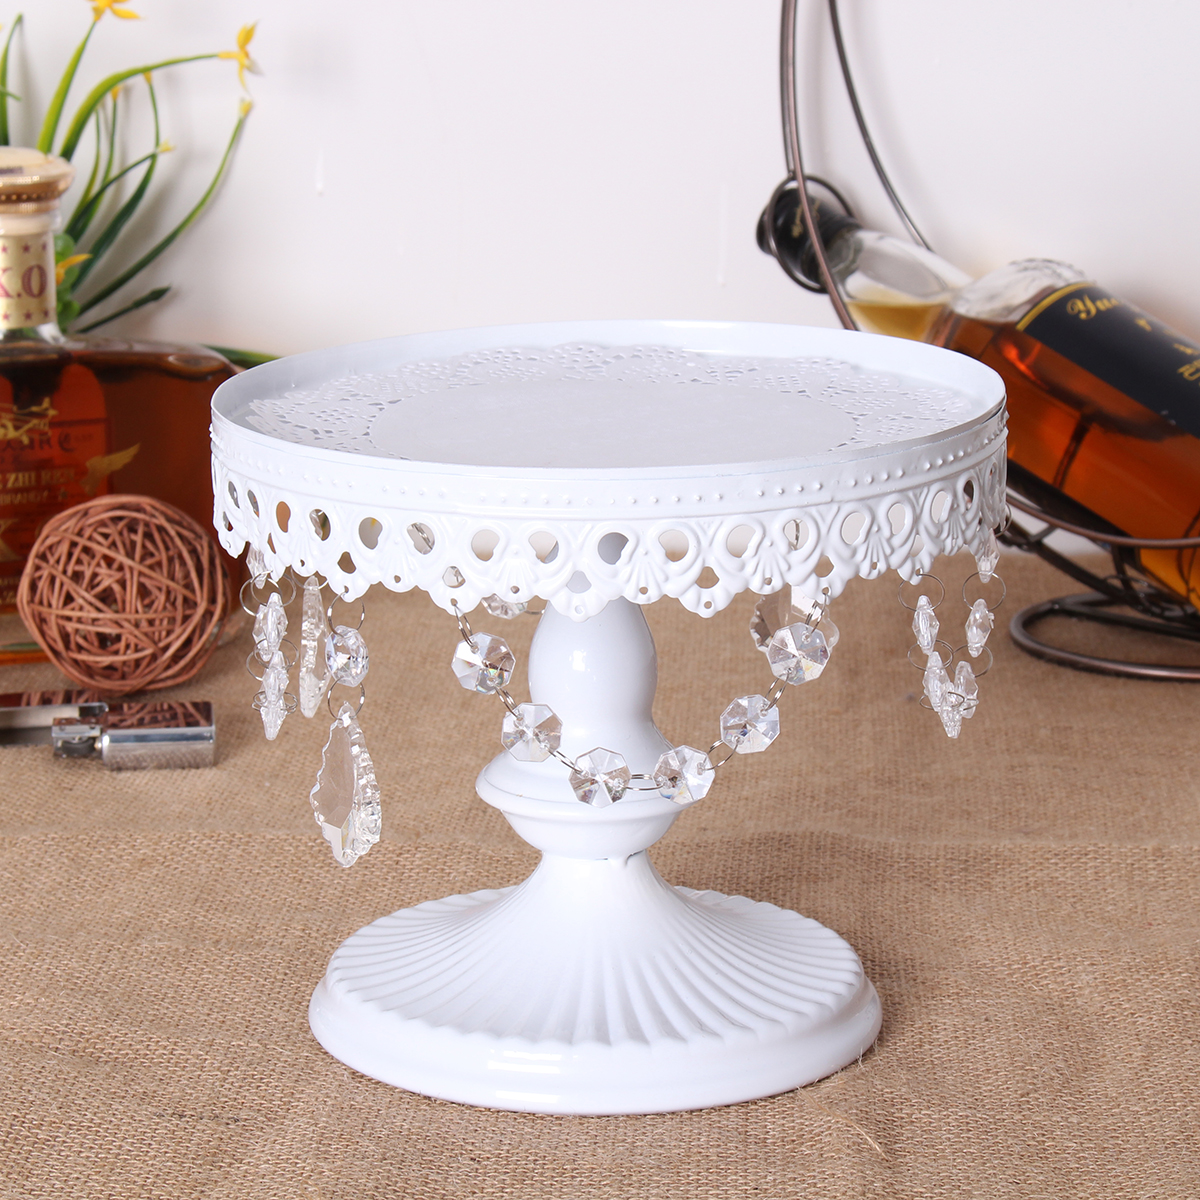 12pcs Set White Gold Crystal Metal Round Cake Stand Holder